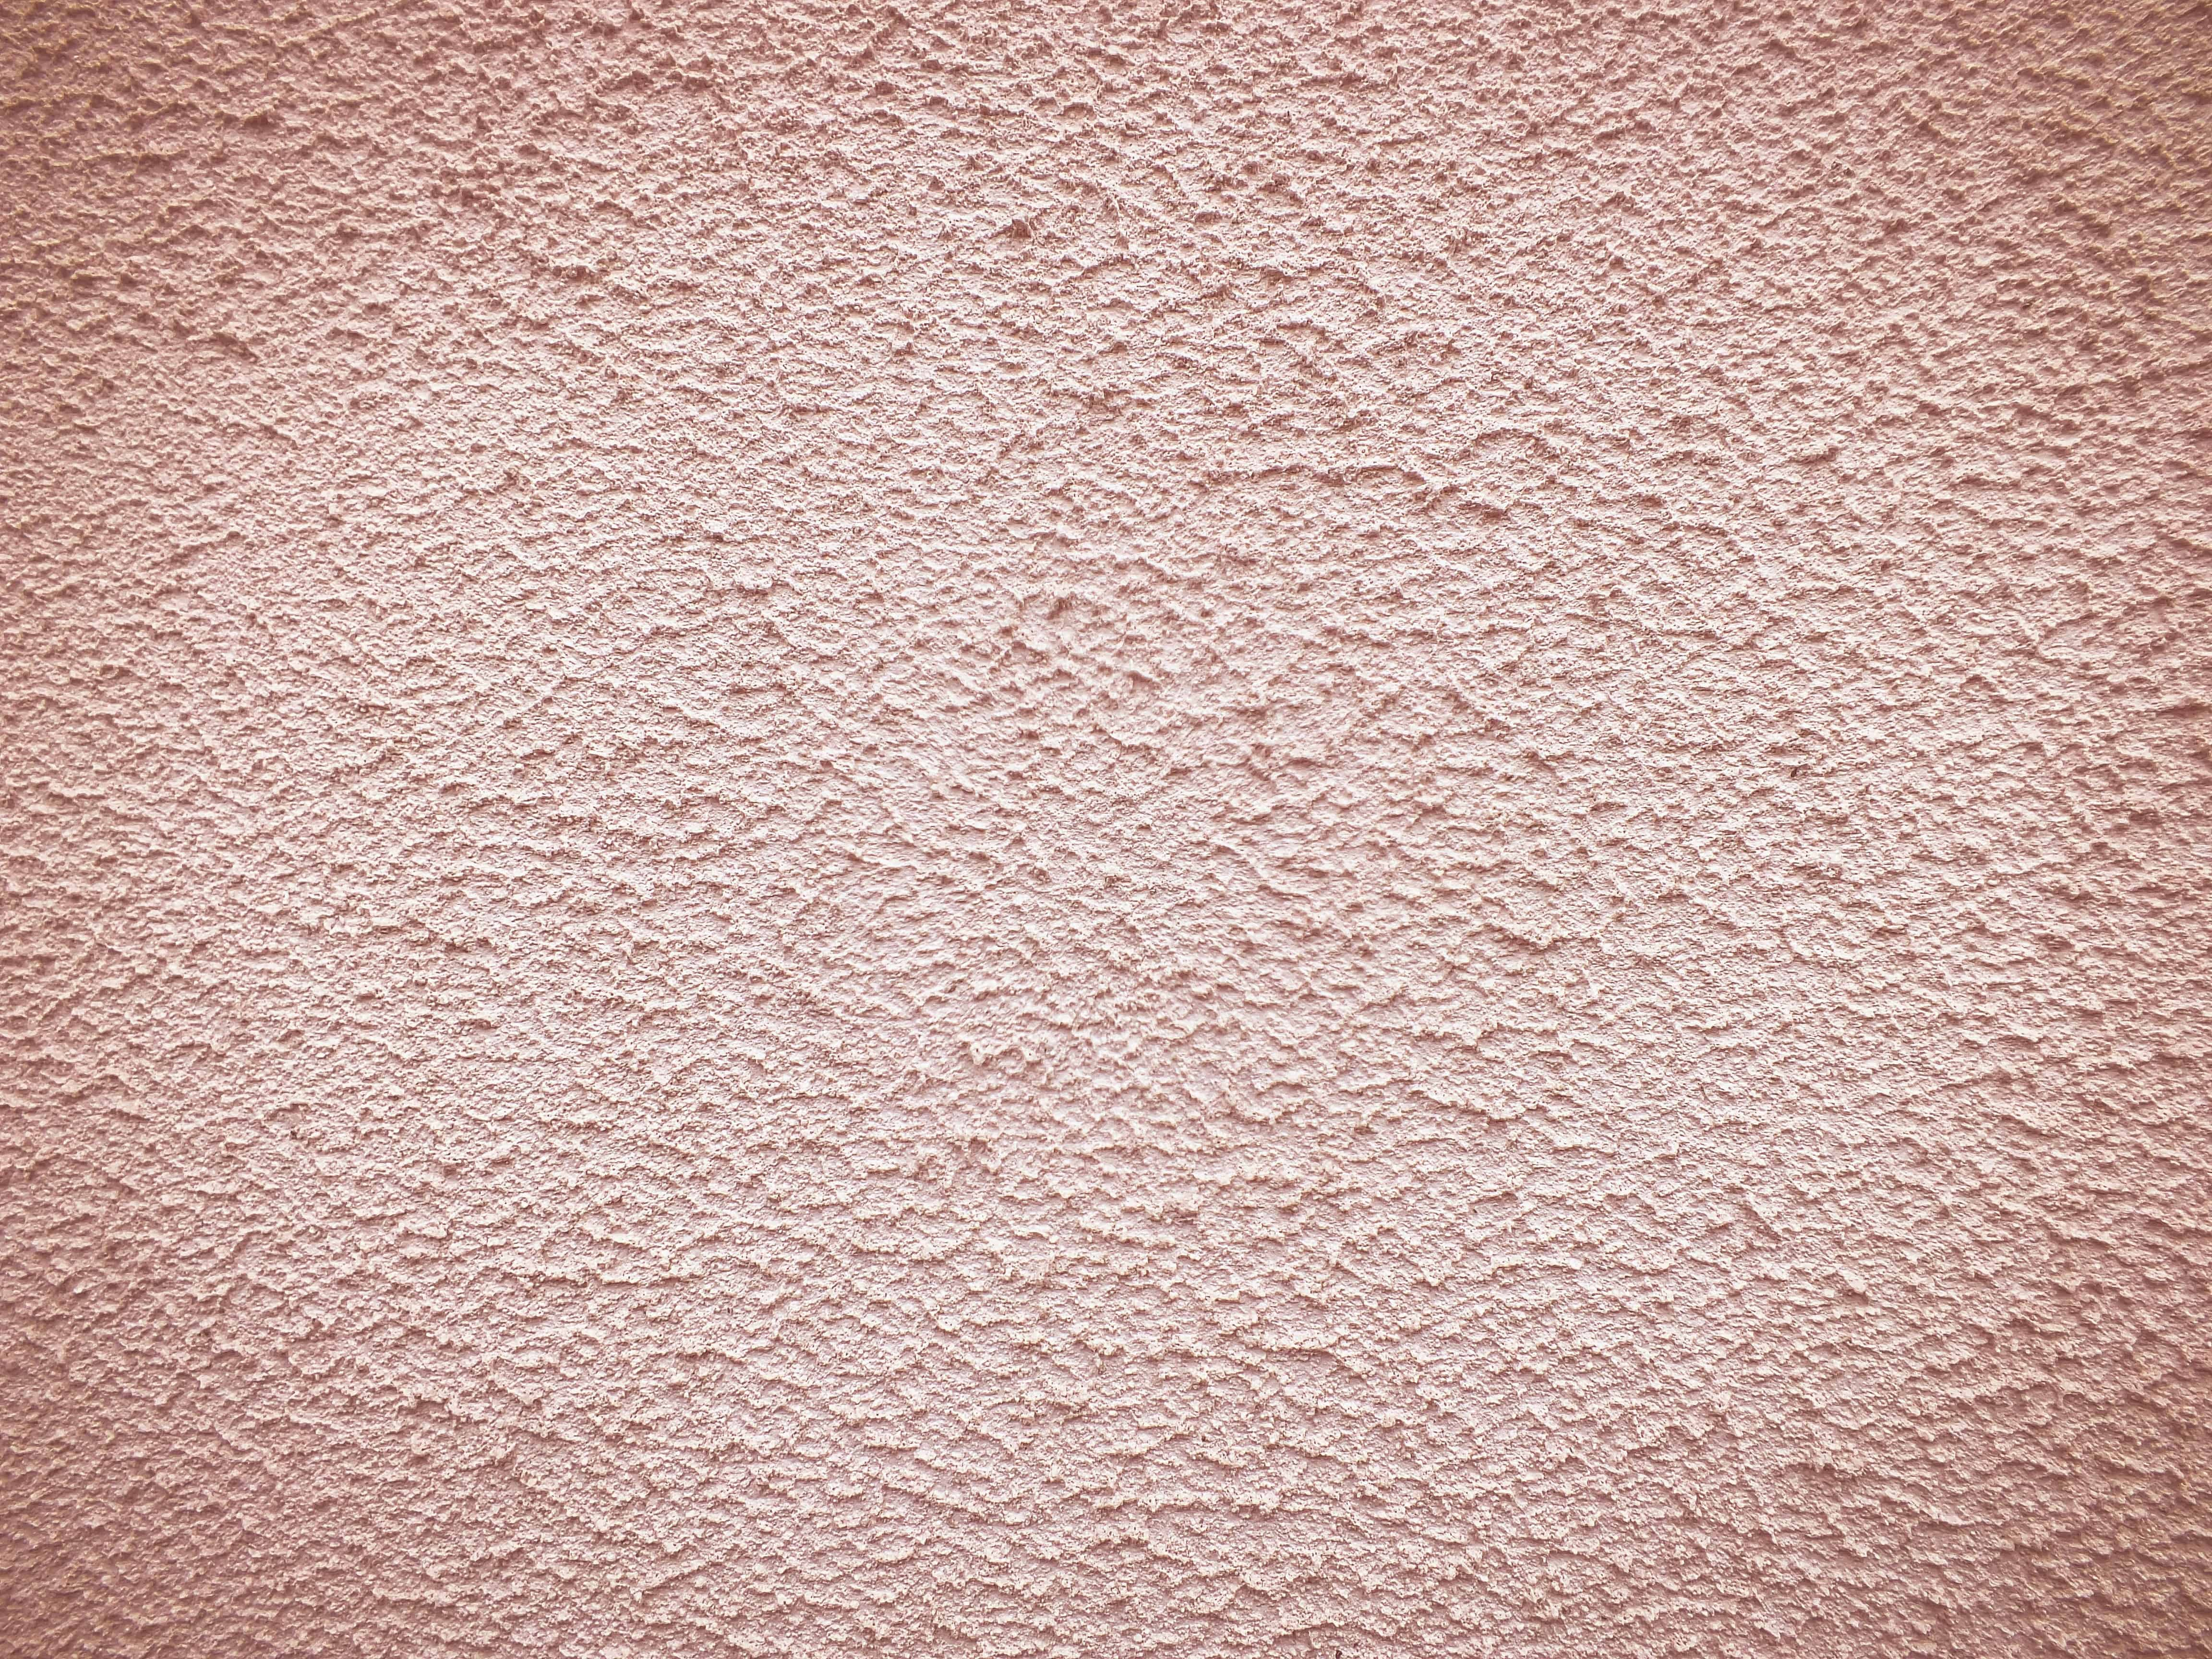 a close up of a pink stucco wall